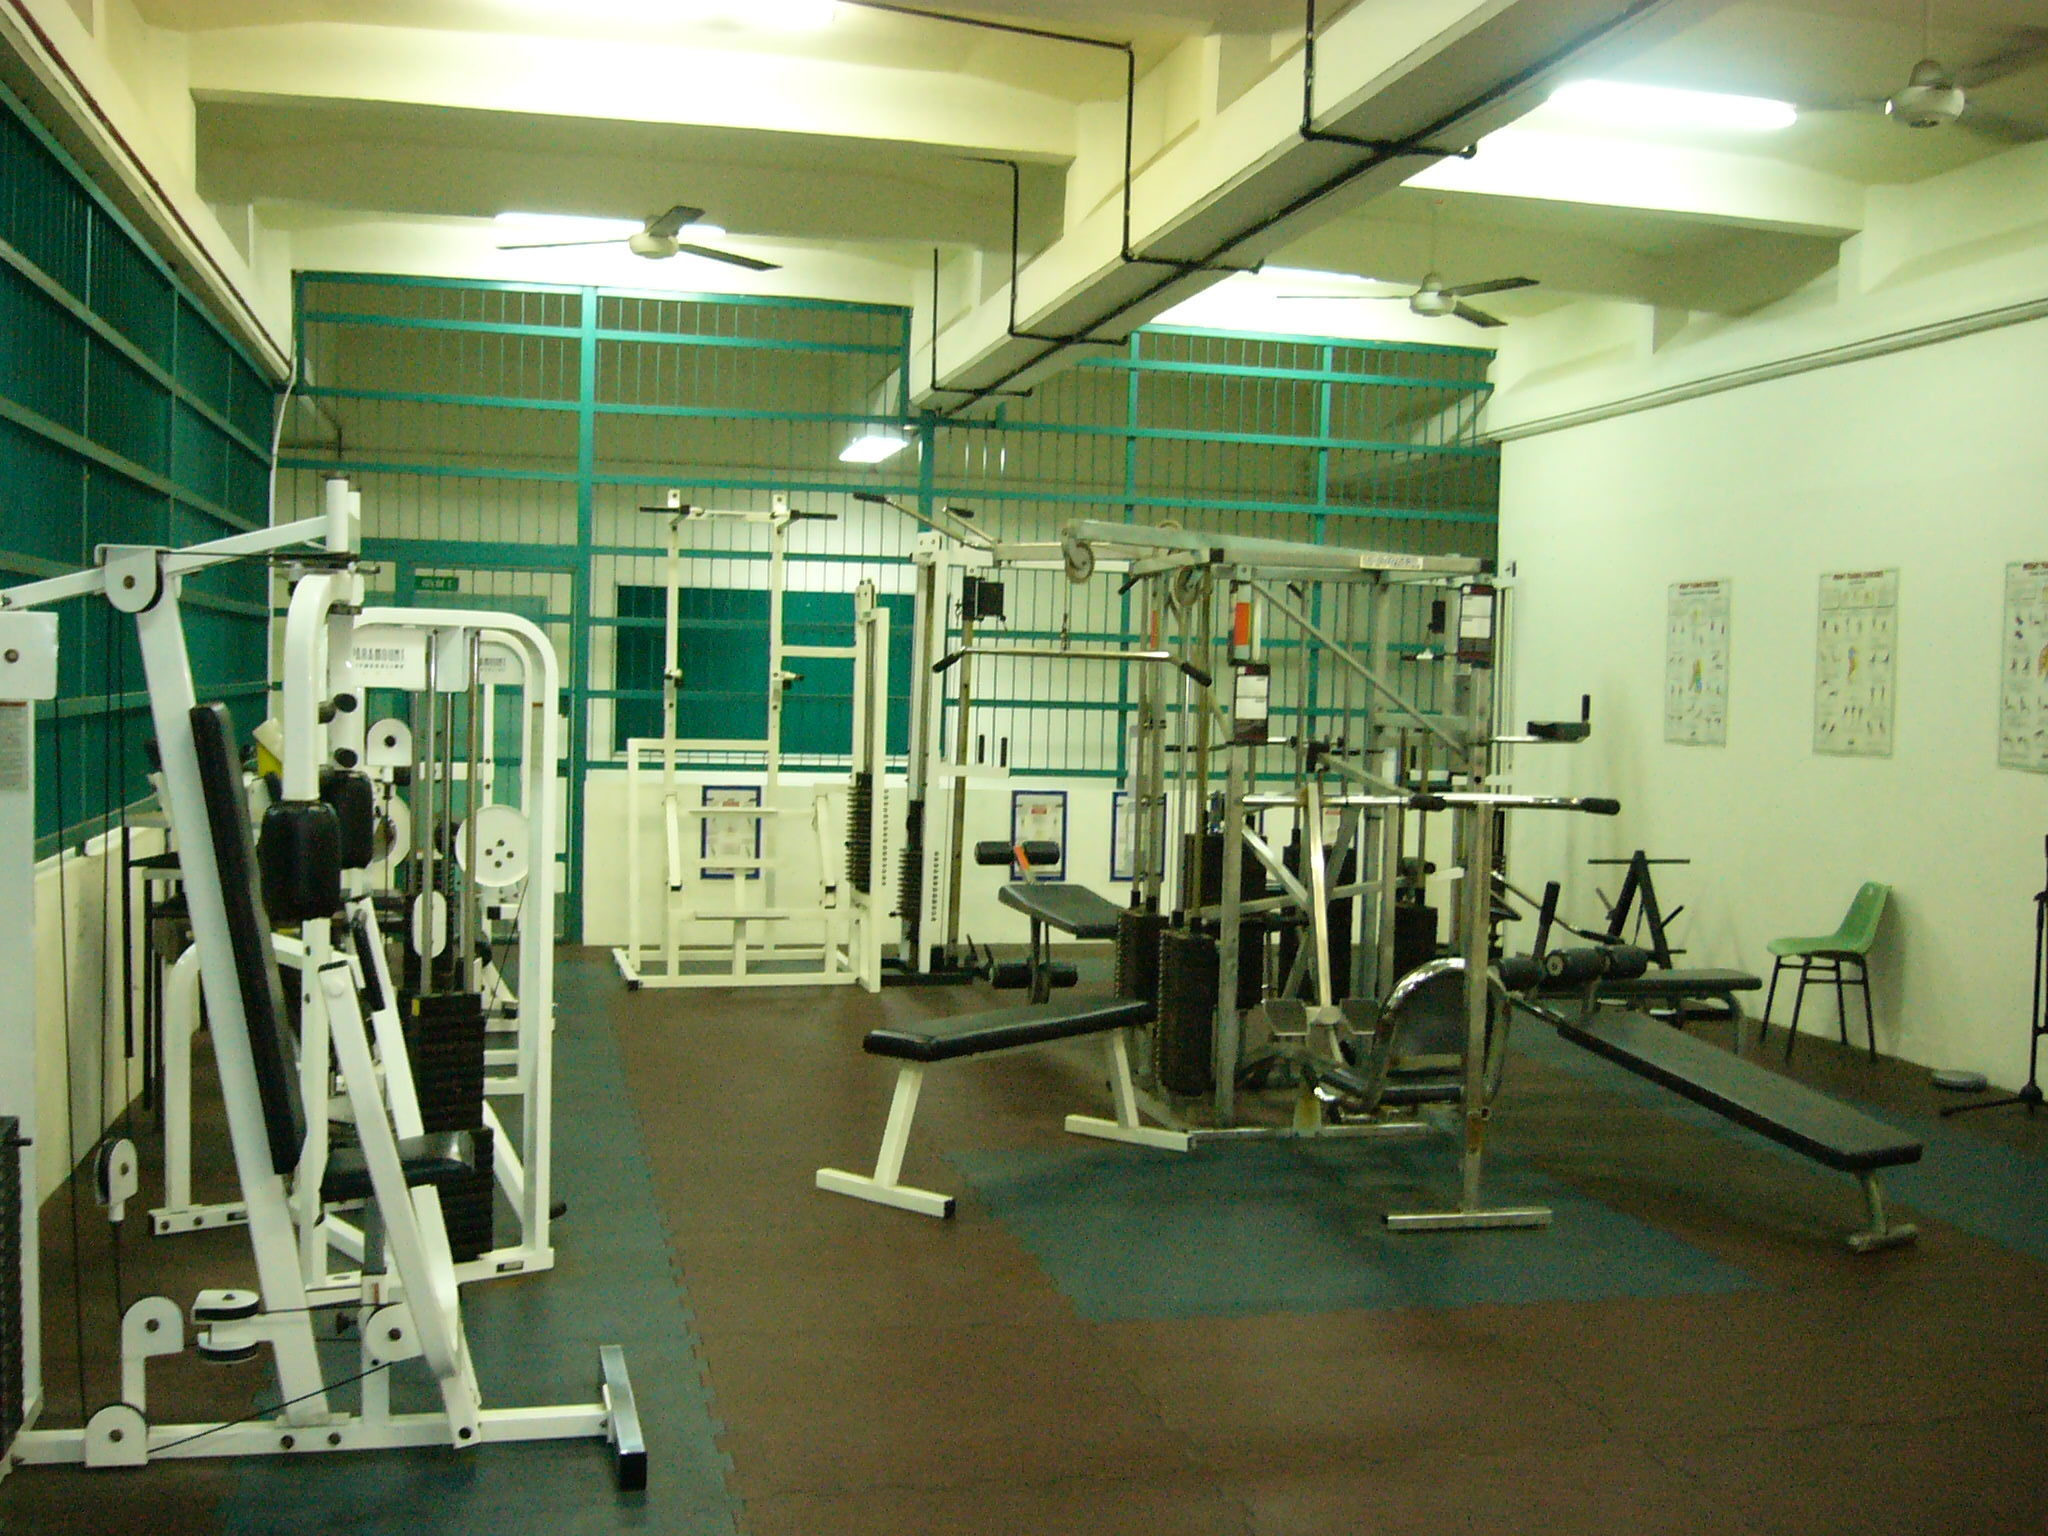 COE_Sports_Facilities_04.JPG